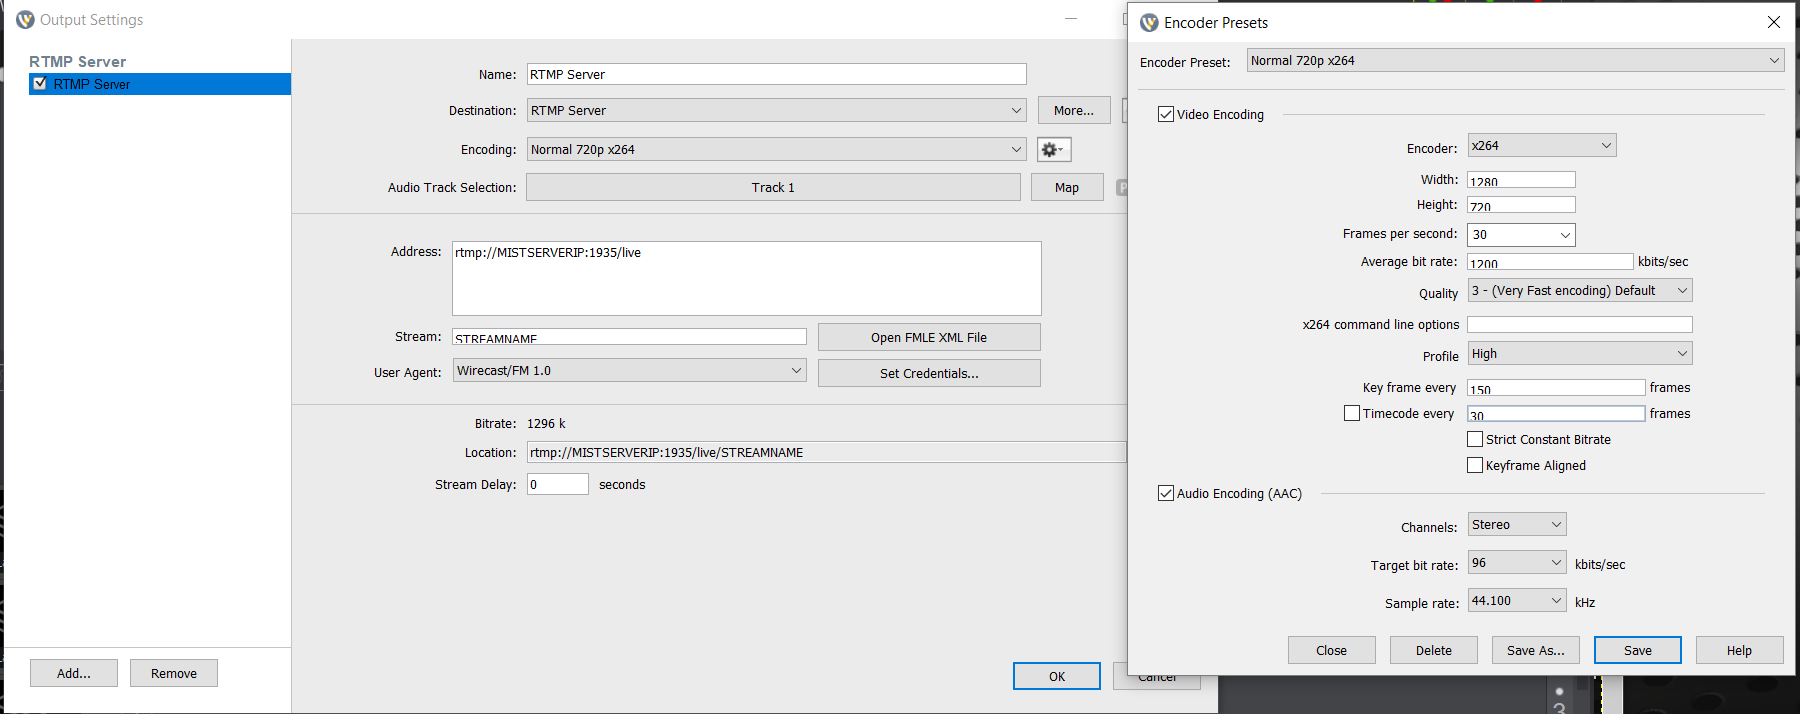 Recommended encoder settings for normal streaming in Wirecast